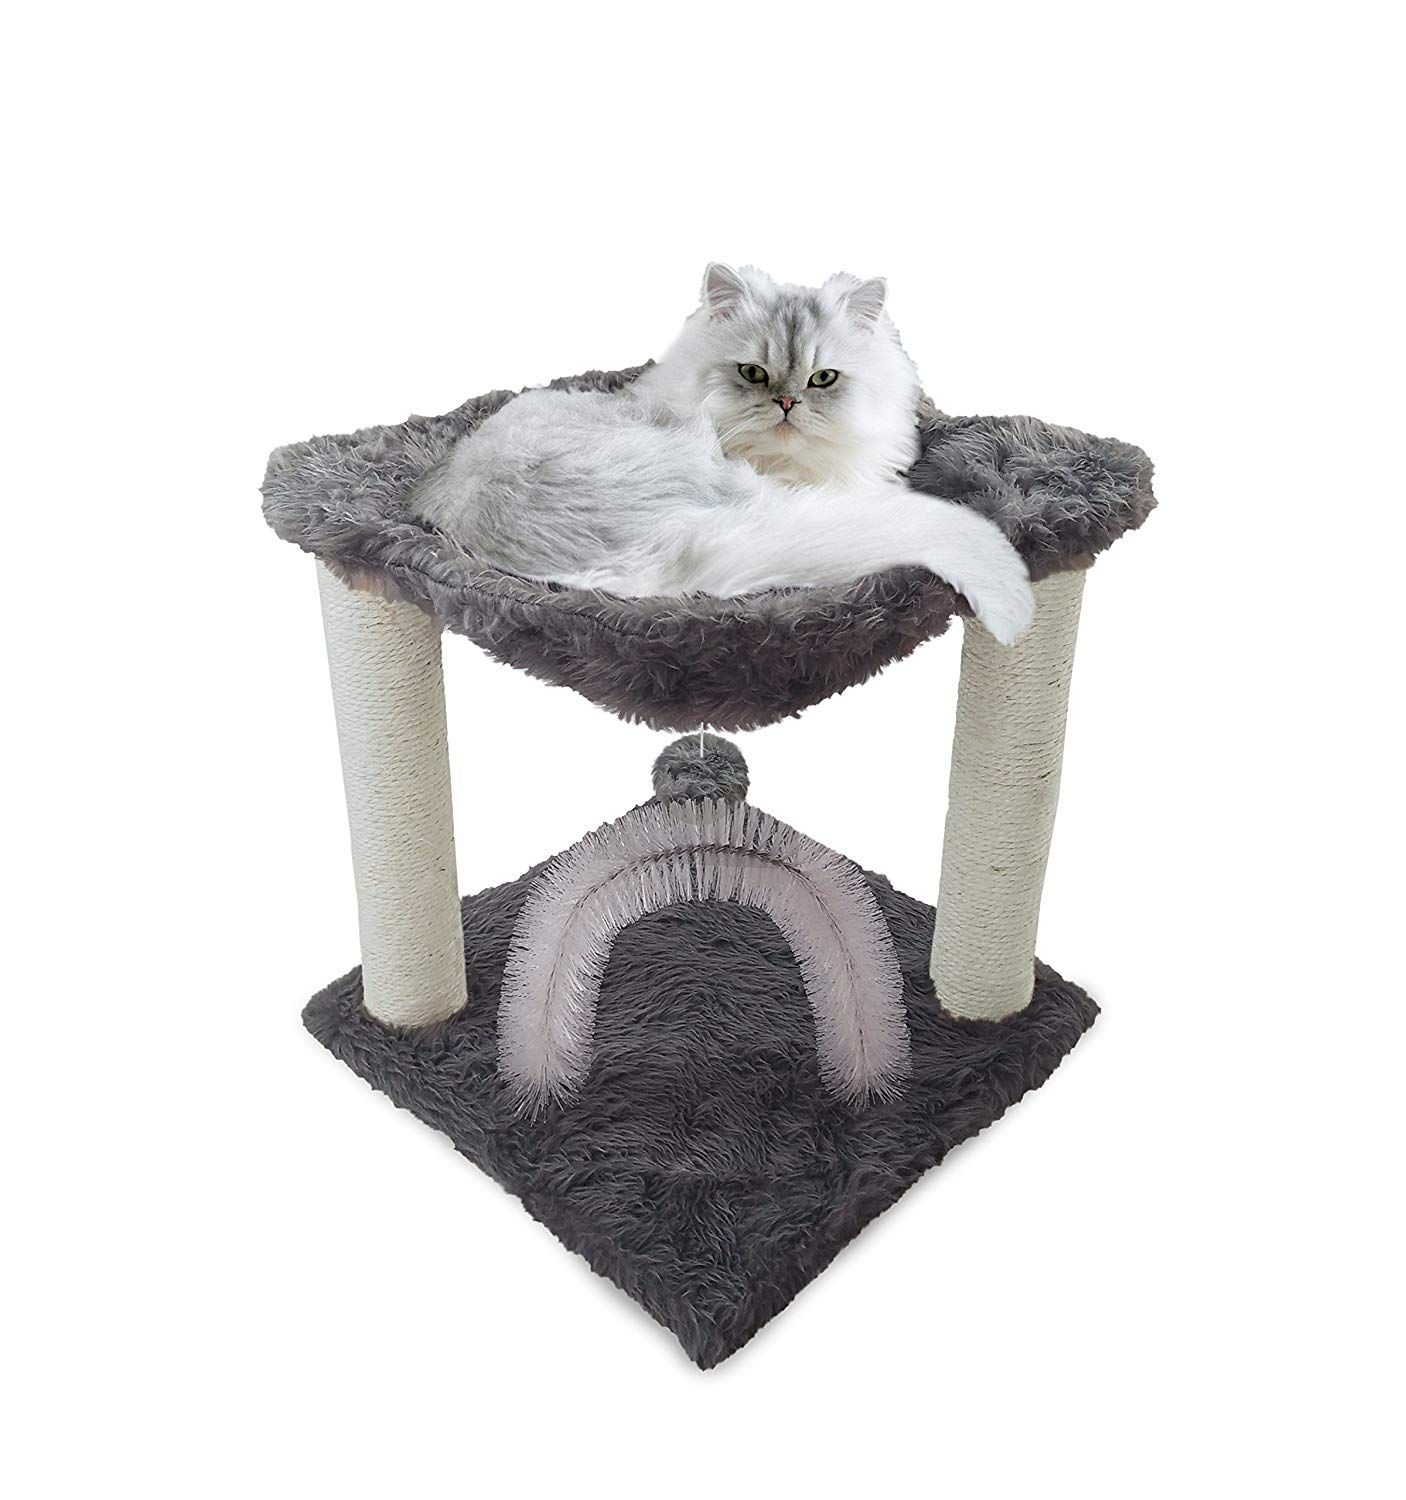 110 Cat Houses And Condos Ideas Cat Bed Cat House Cats